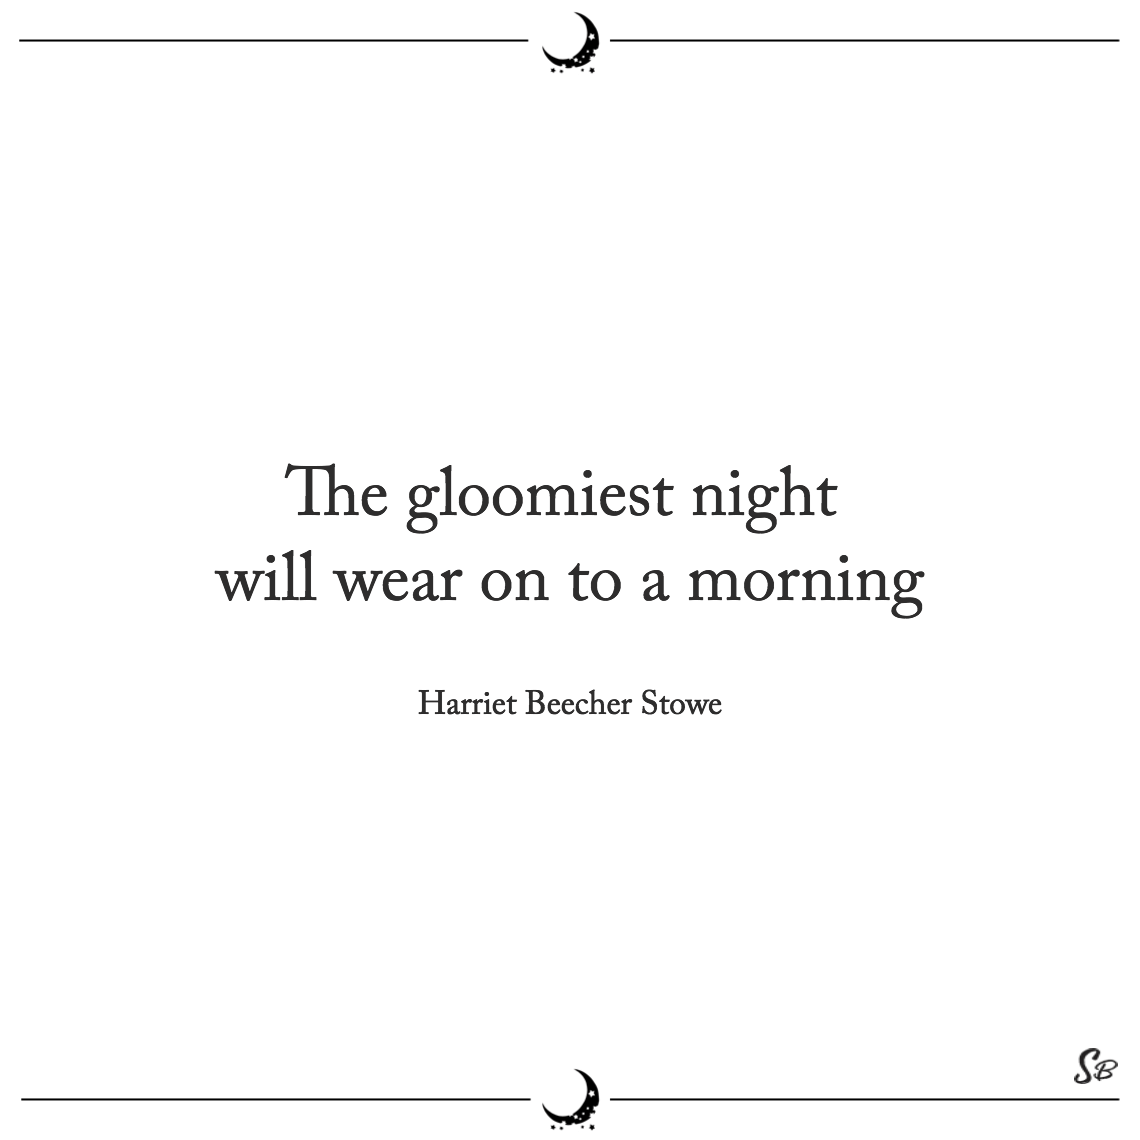 The gloomiest night will wear on to a morning harriet beecher stowe